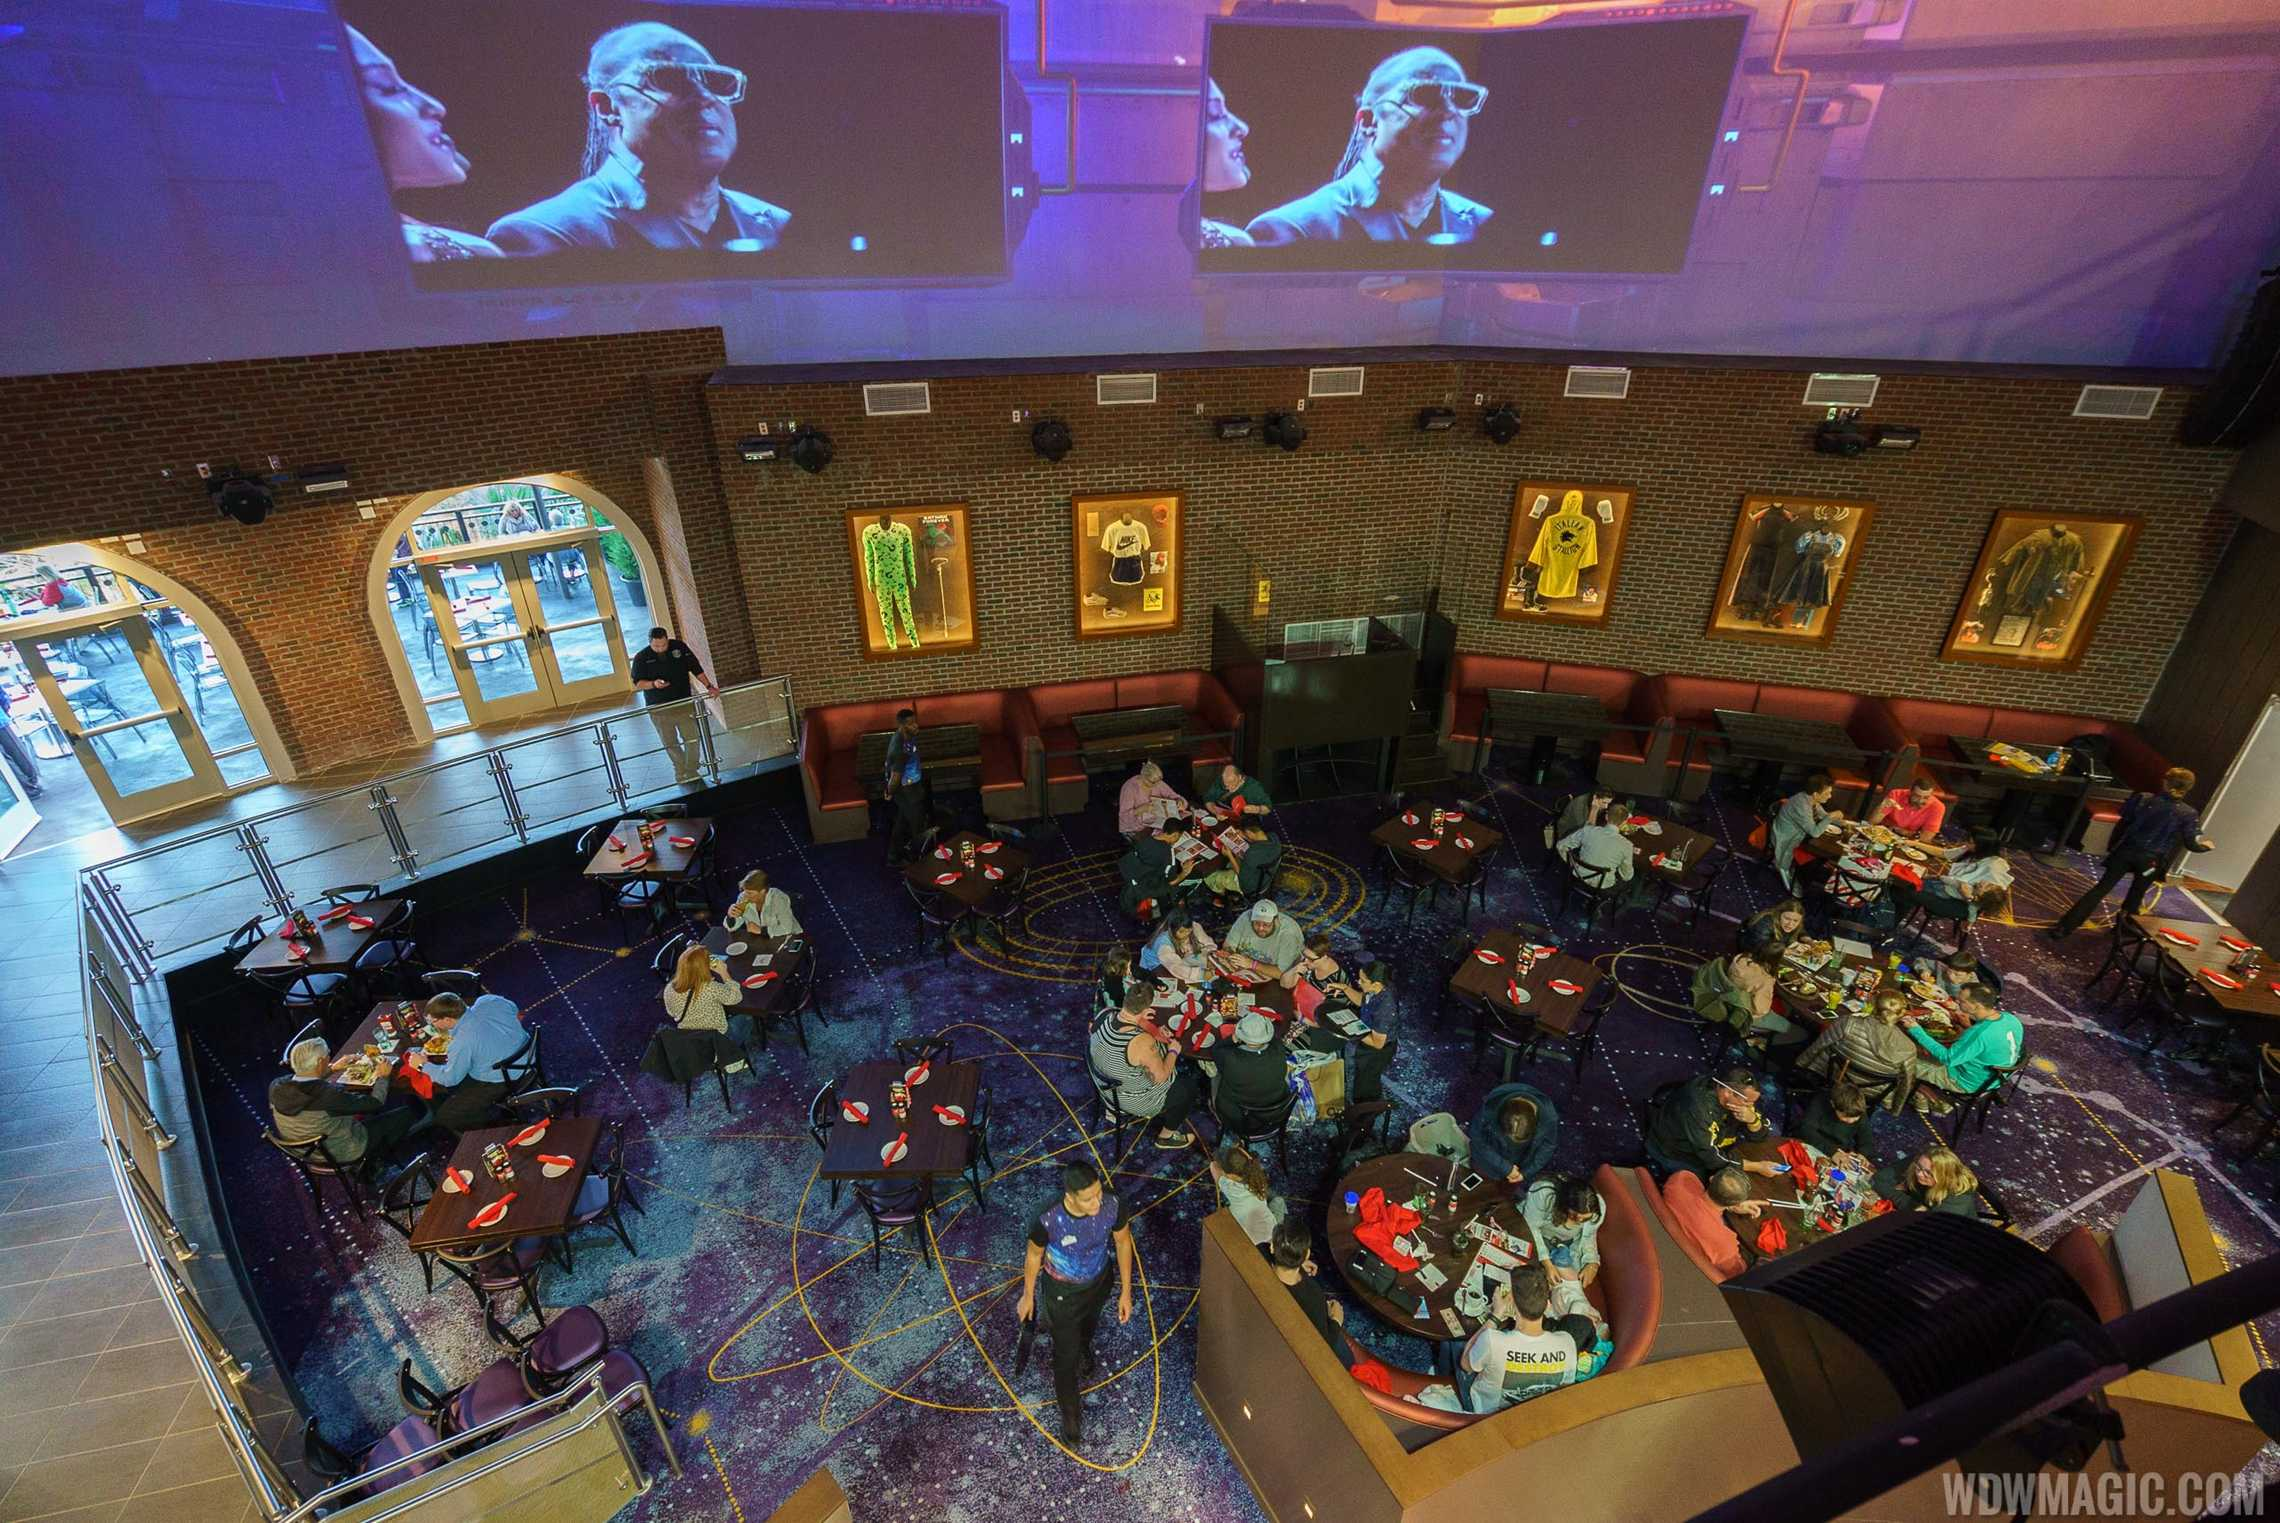 Planet Hollywood Observatory - View from the second level onto the first